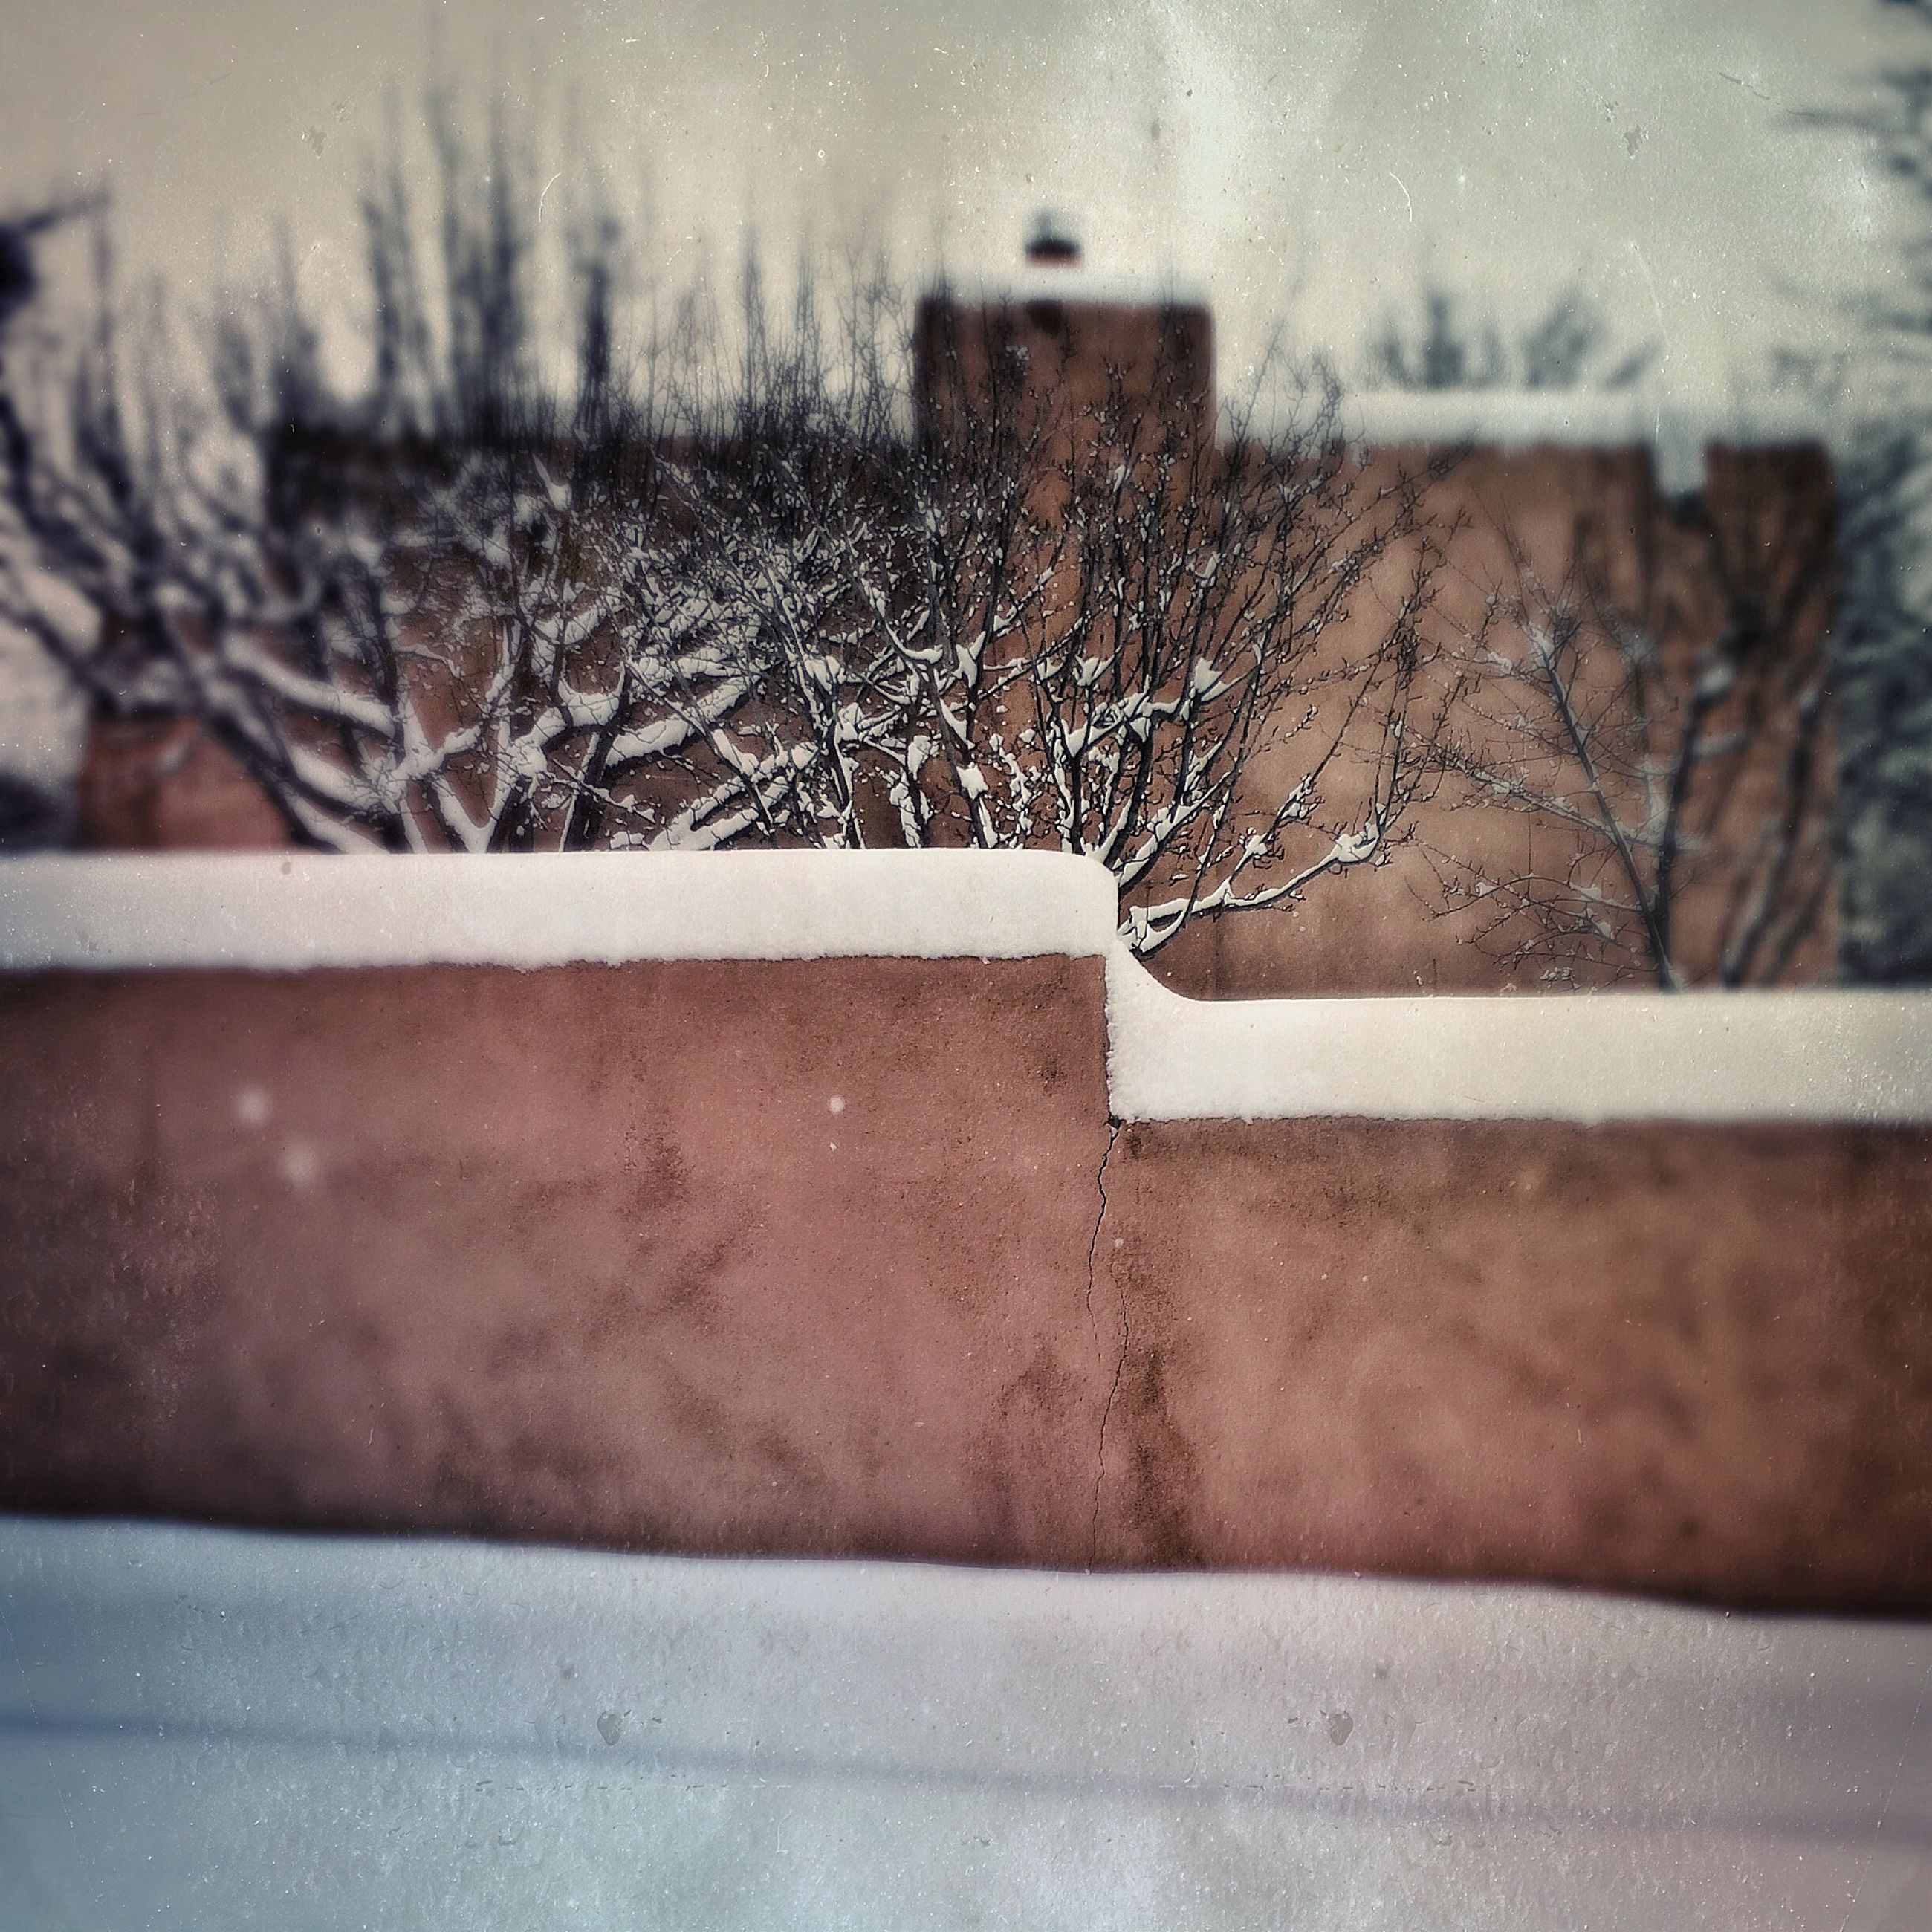 window, water, glass - material, indoors, transparent, season, close-up, weather, wet, cold temperature, drop, focus on foreground, winter, rain, day, snow, reflection, no people, built structure, frozen